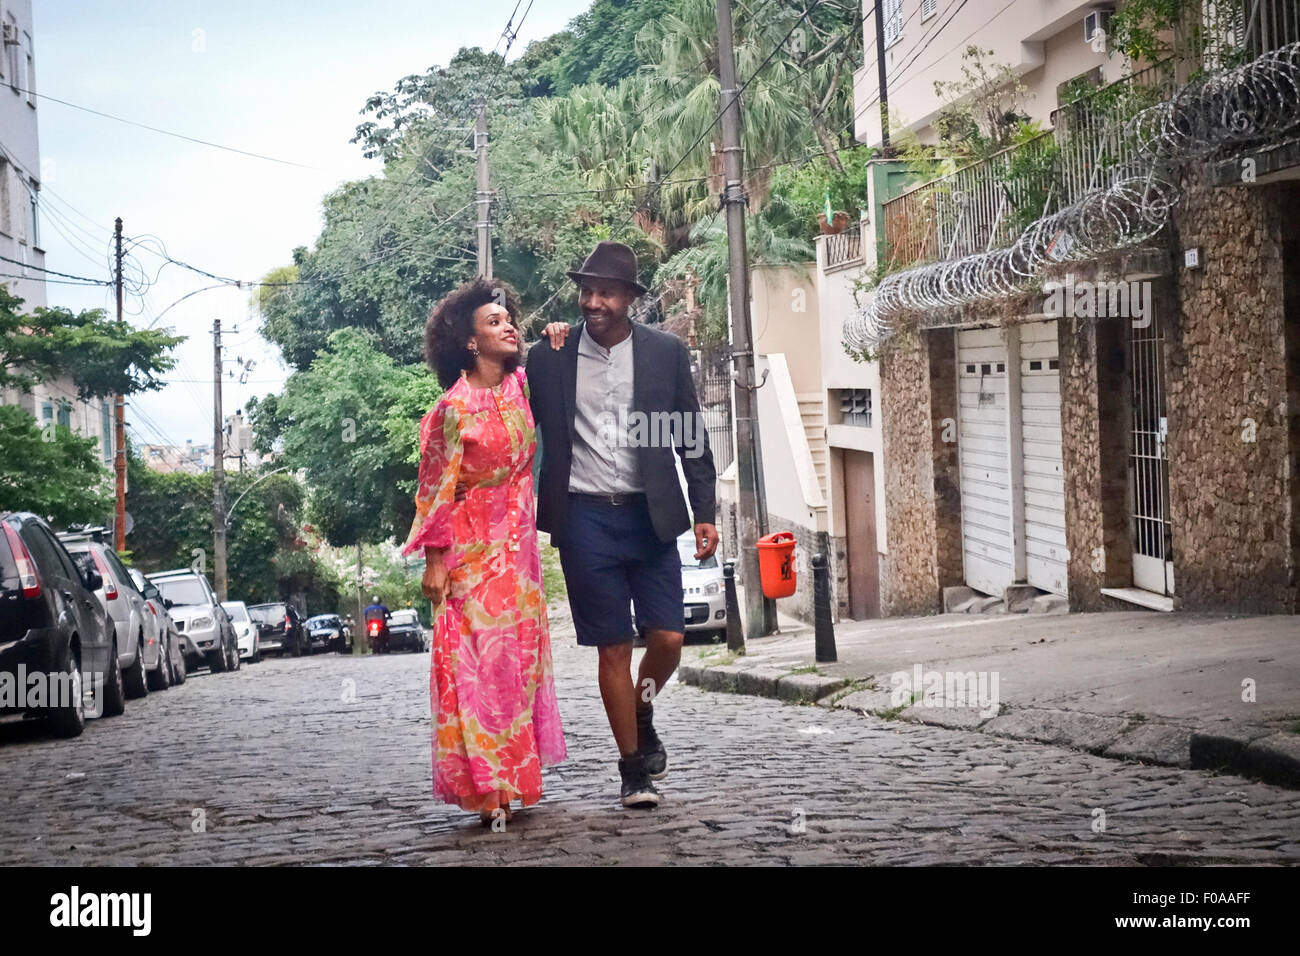 Couple walking down cobbled street, smiling - Stock Image